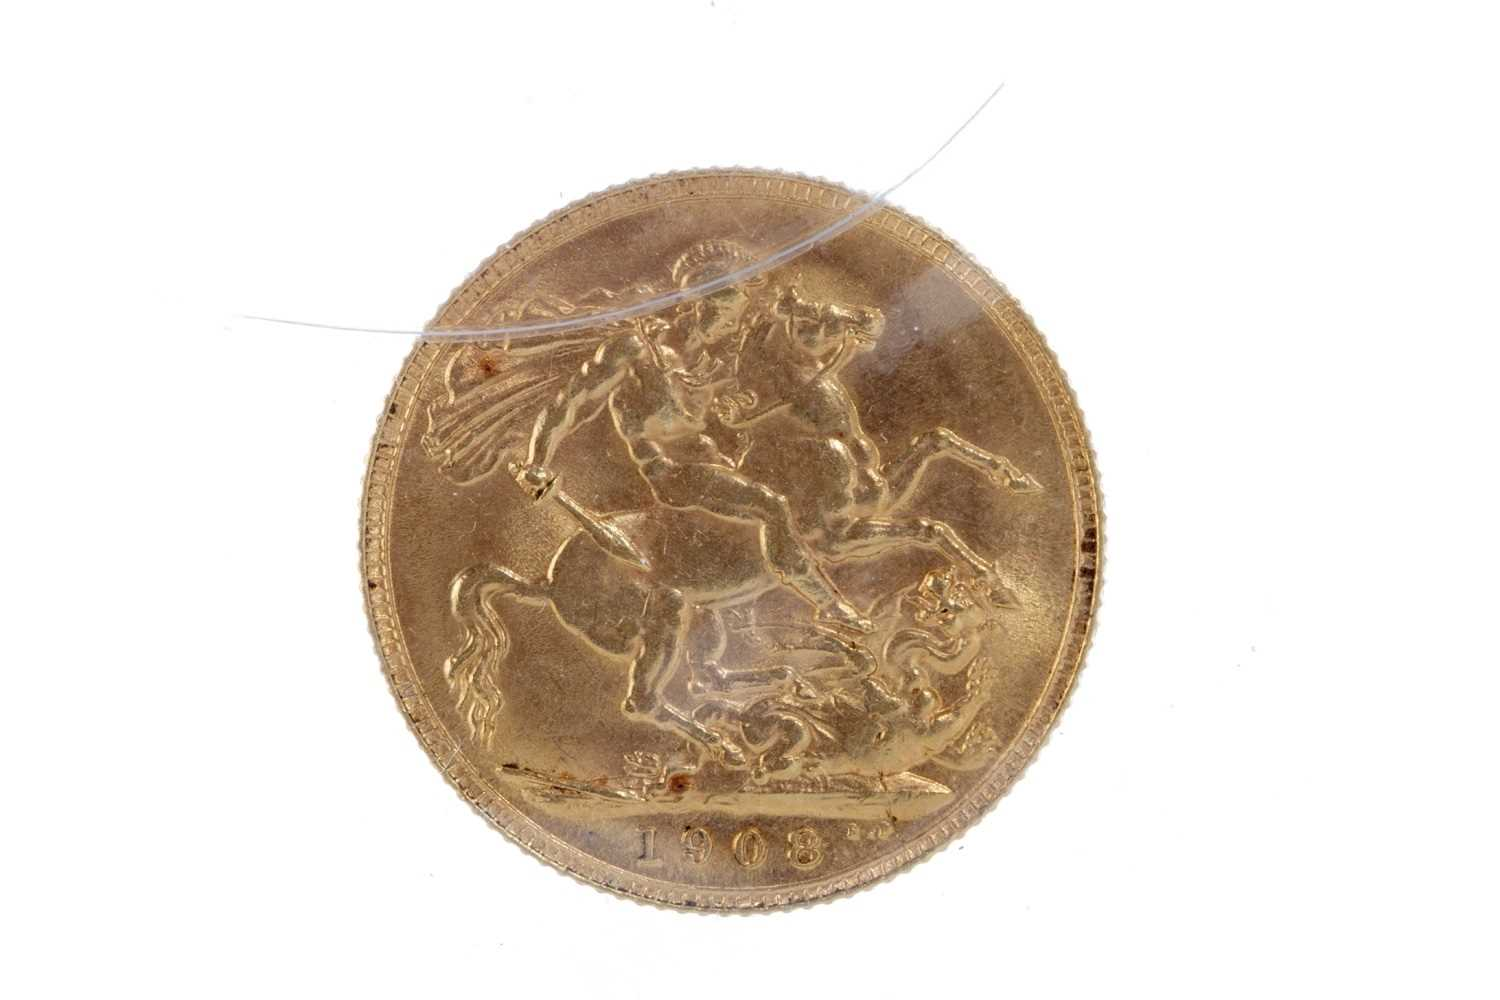 Lot 506 - A GOLD SOVEREIGN, 1908